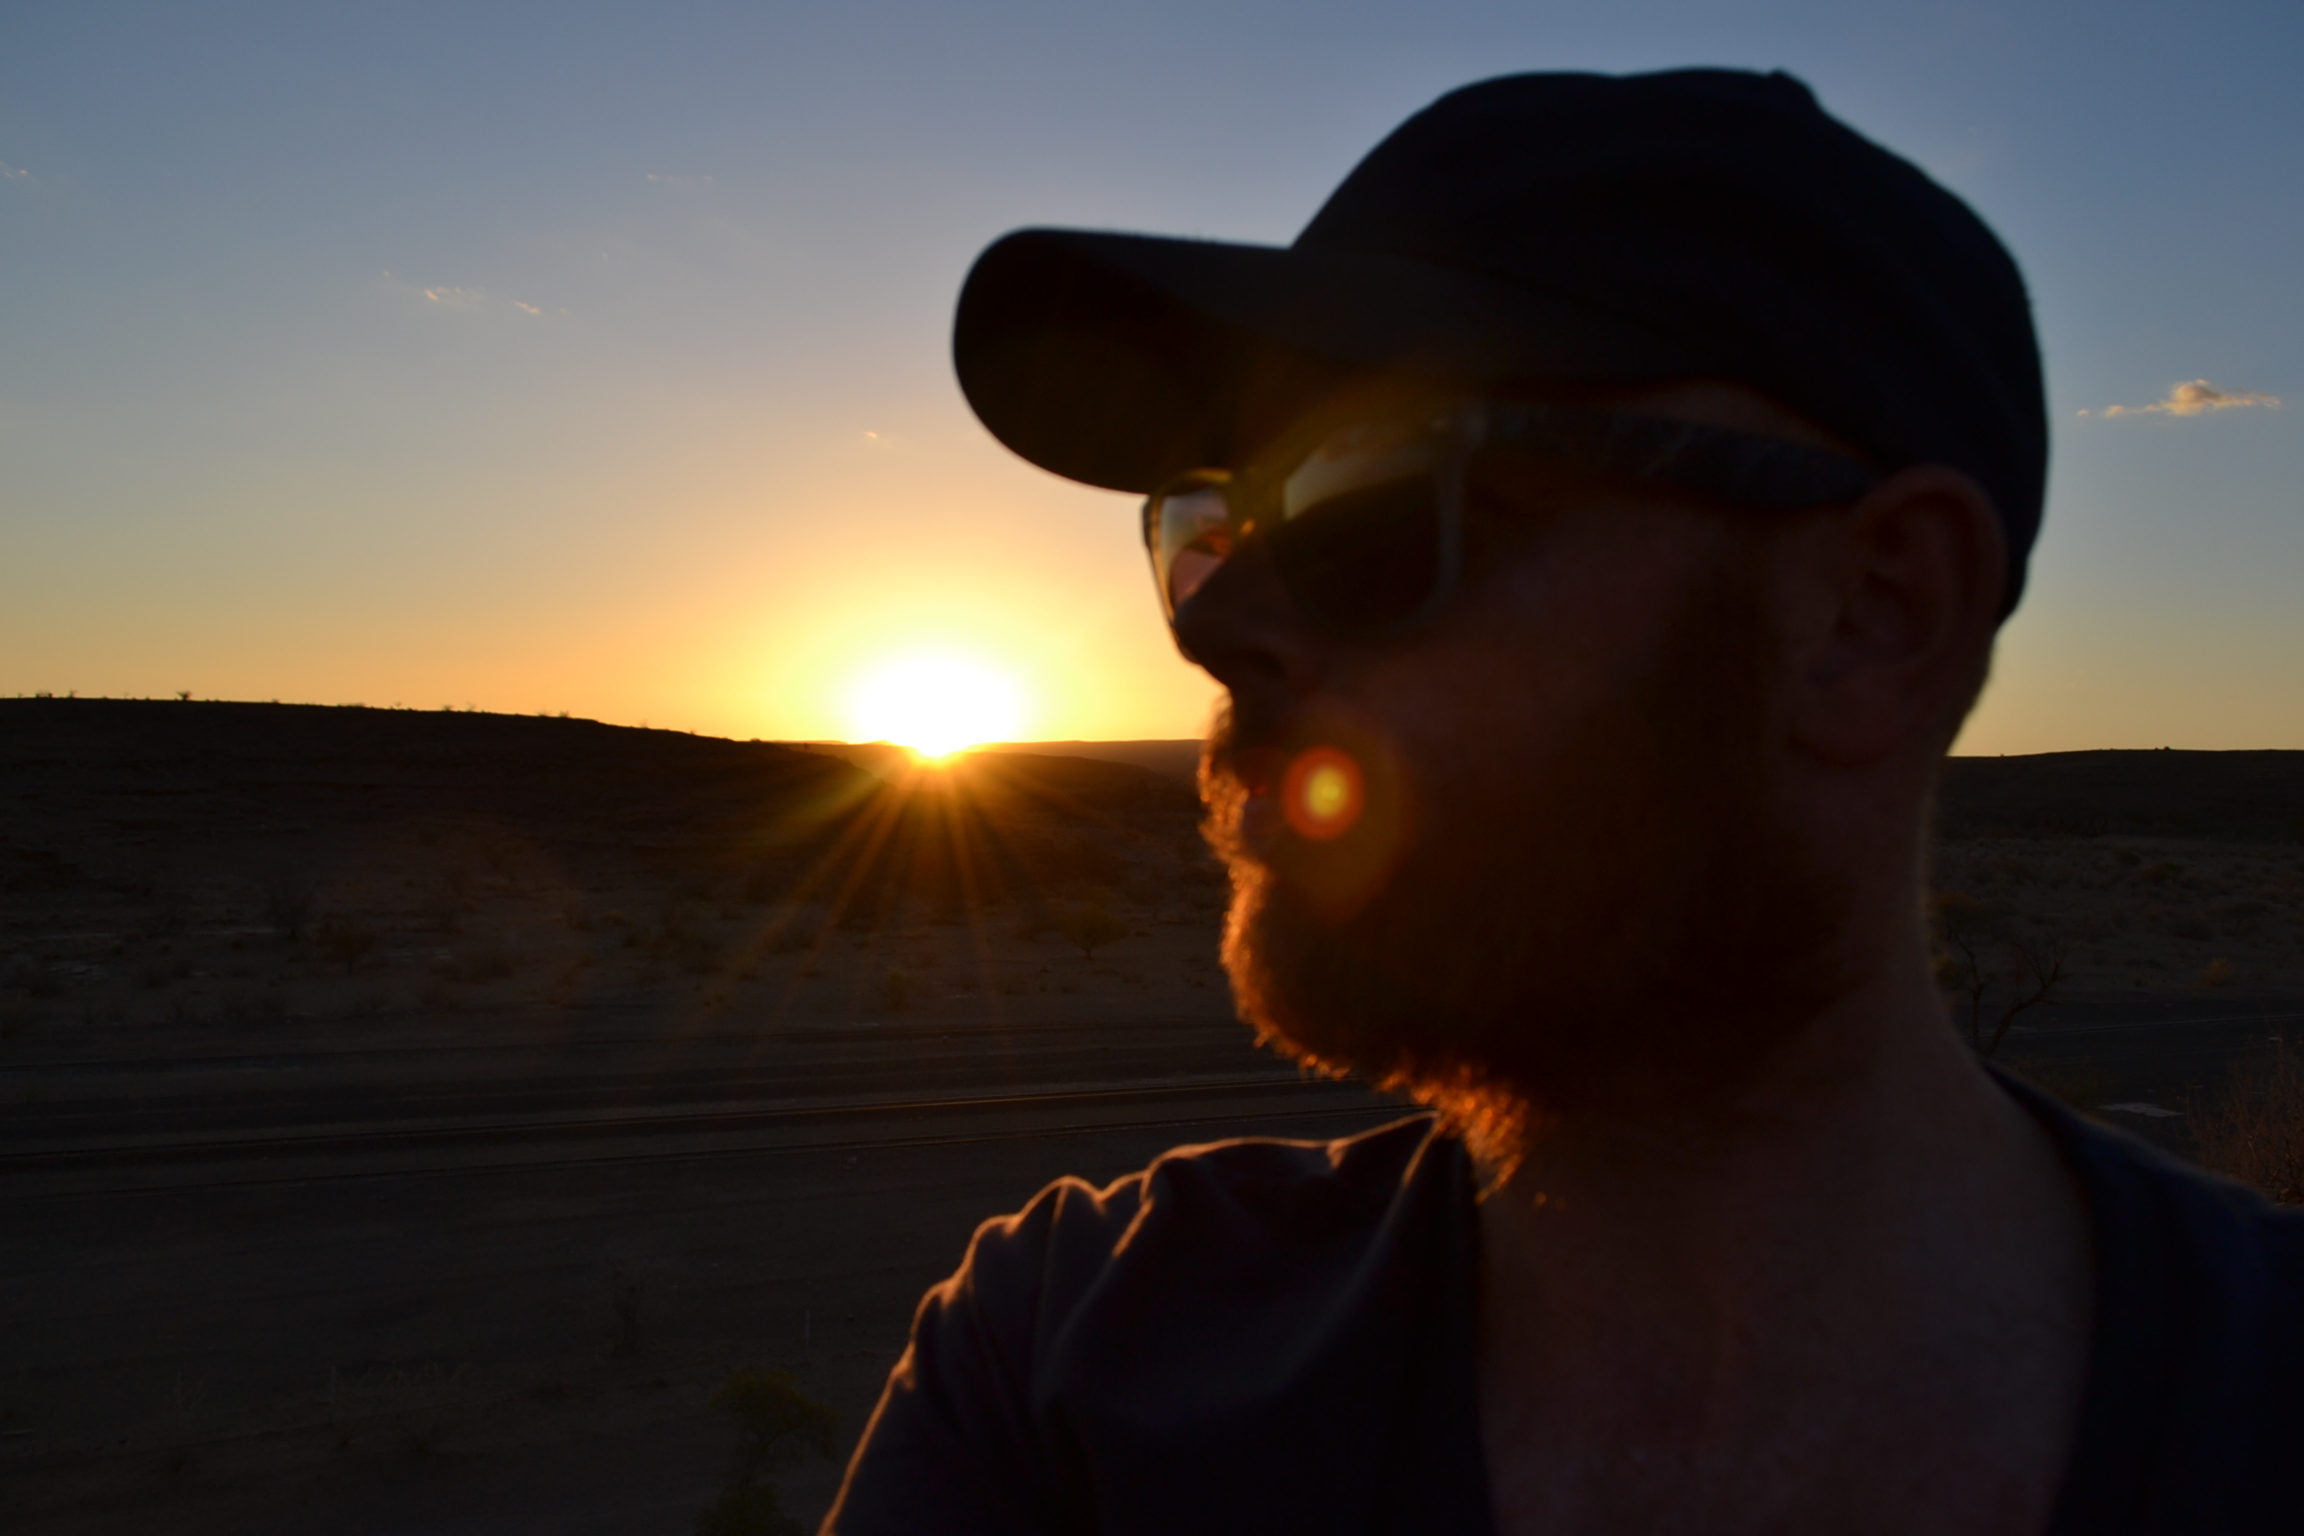 Sunset, the coolest pic of me I could find!